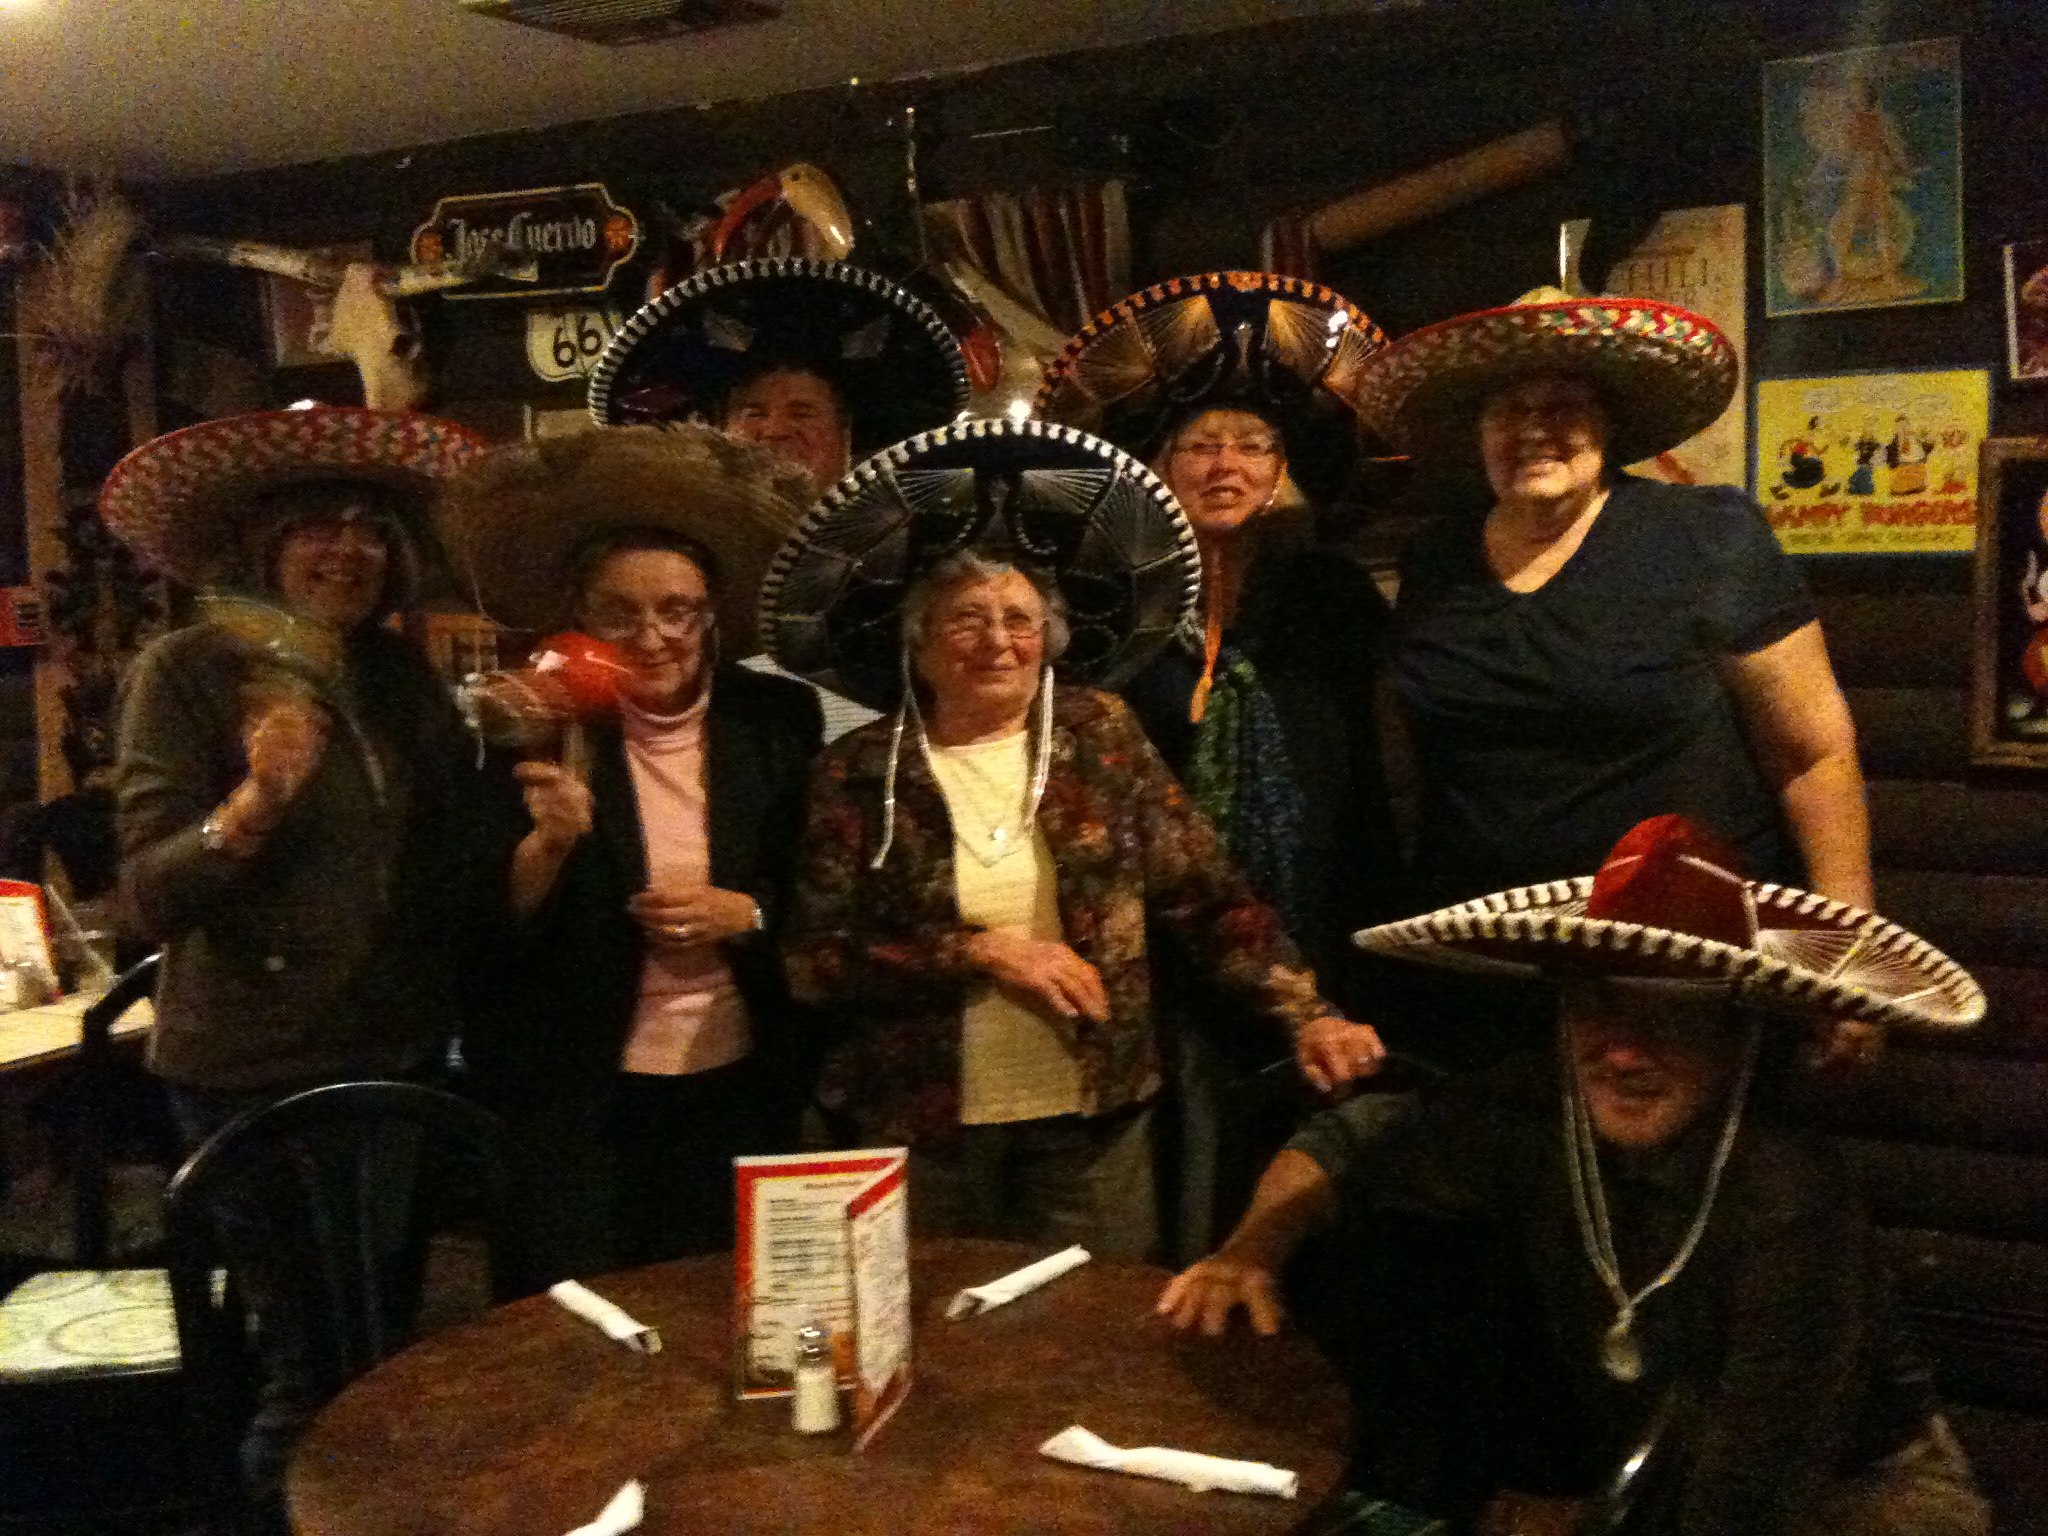 Club members have fun at their Loco Perro meeting